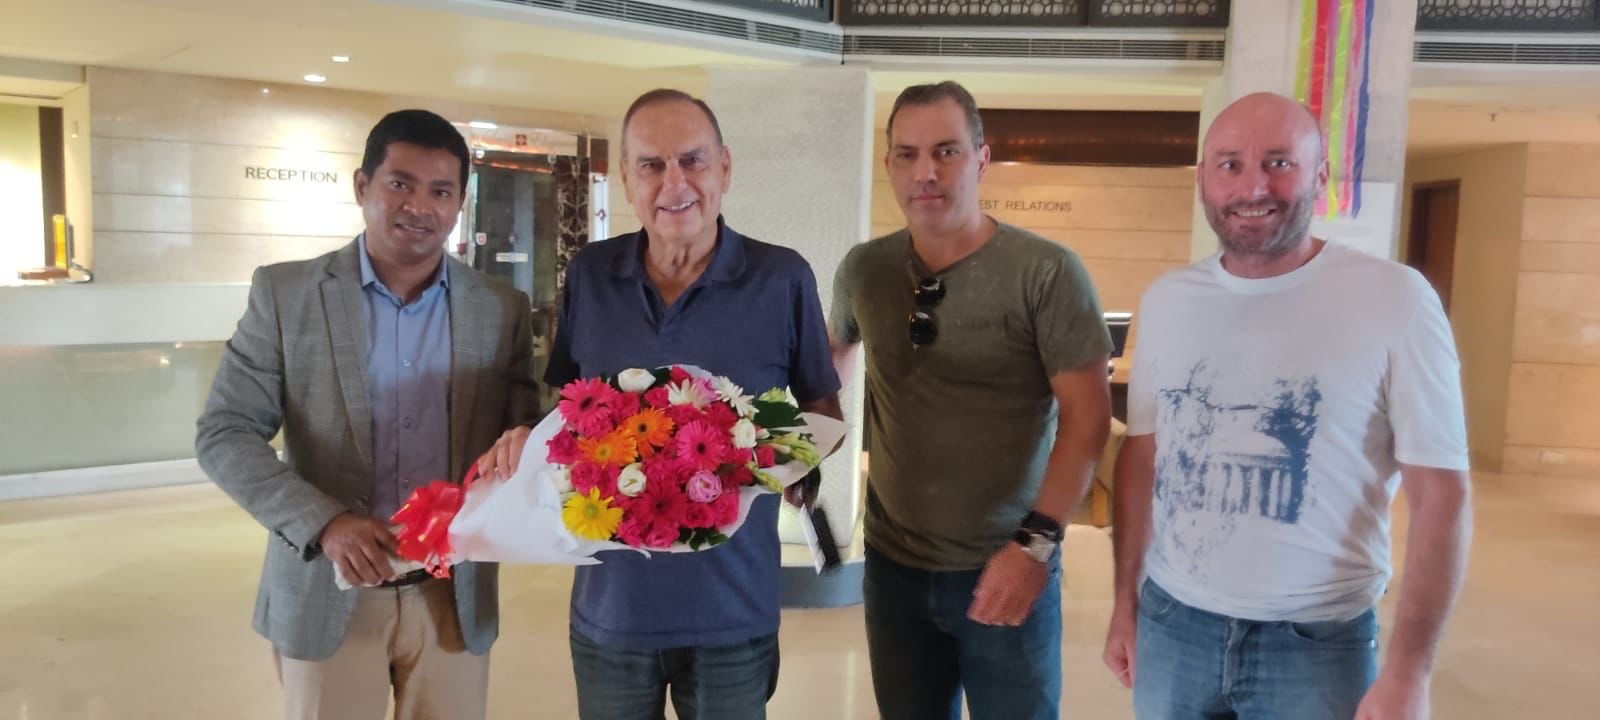 Chelsea Football Club and former coach of the Ghana national football team Mr. Abraham Grant arrived in Bangladesh